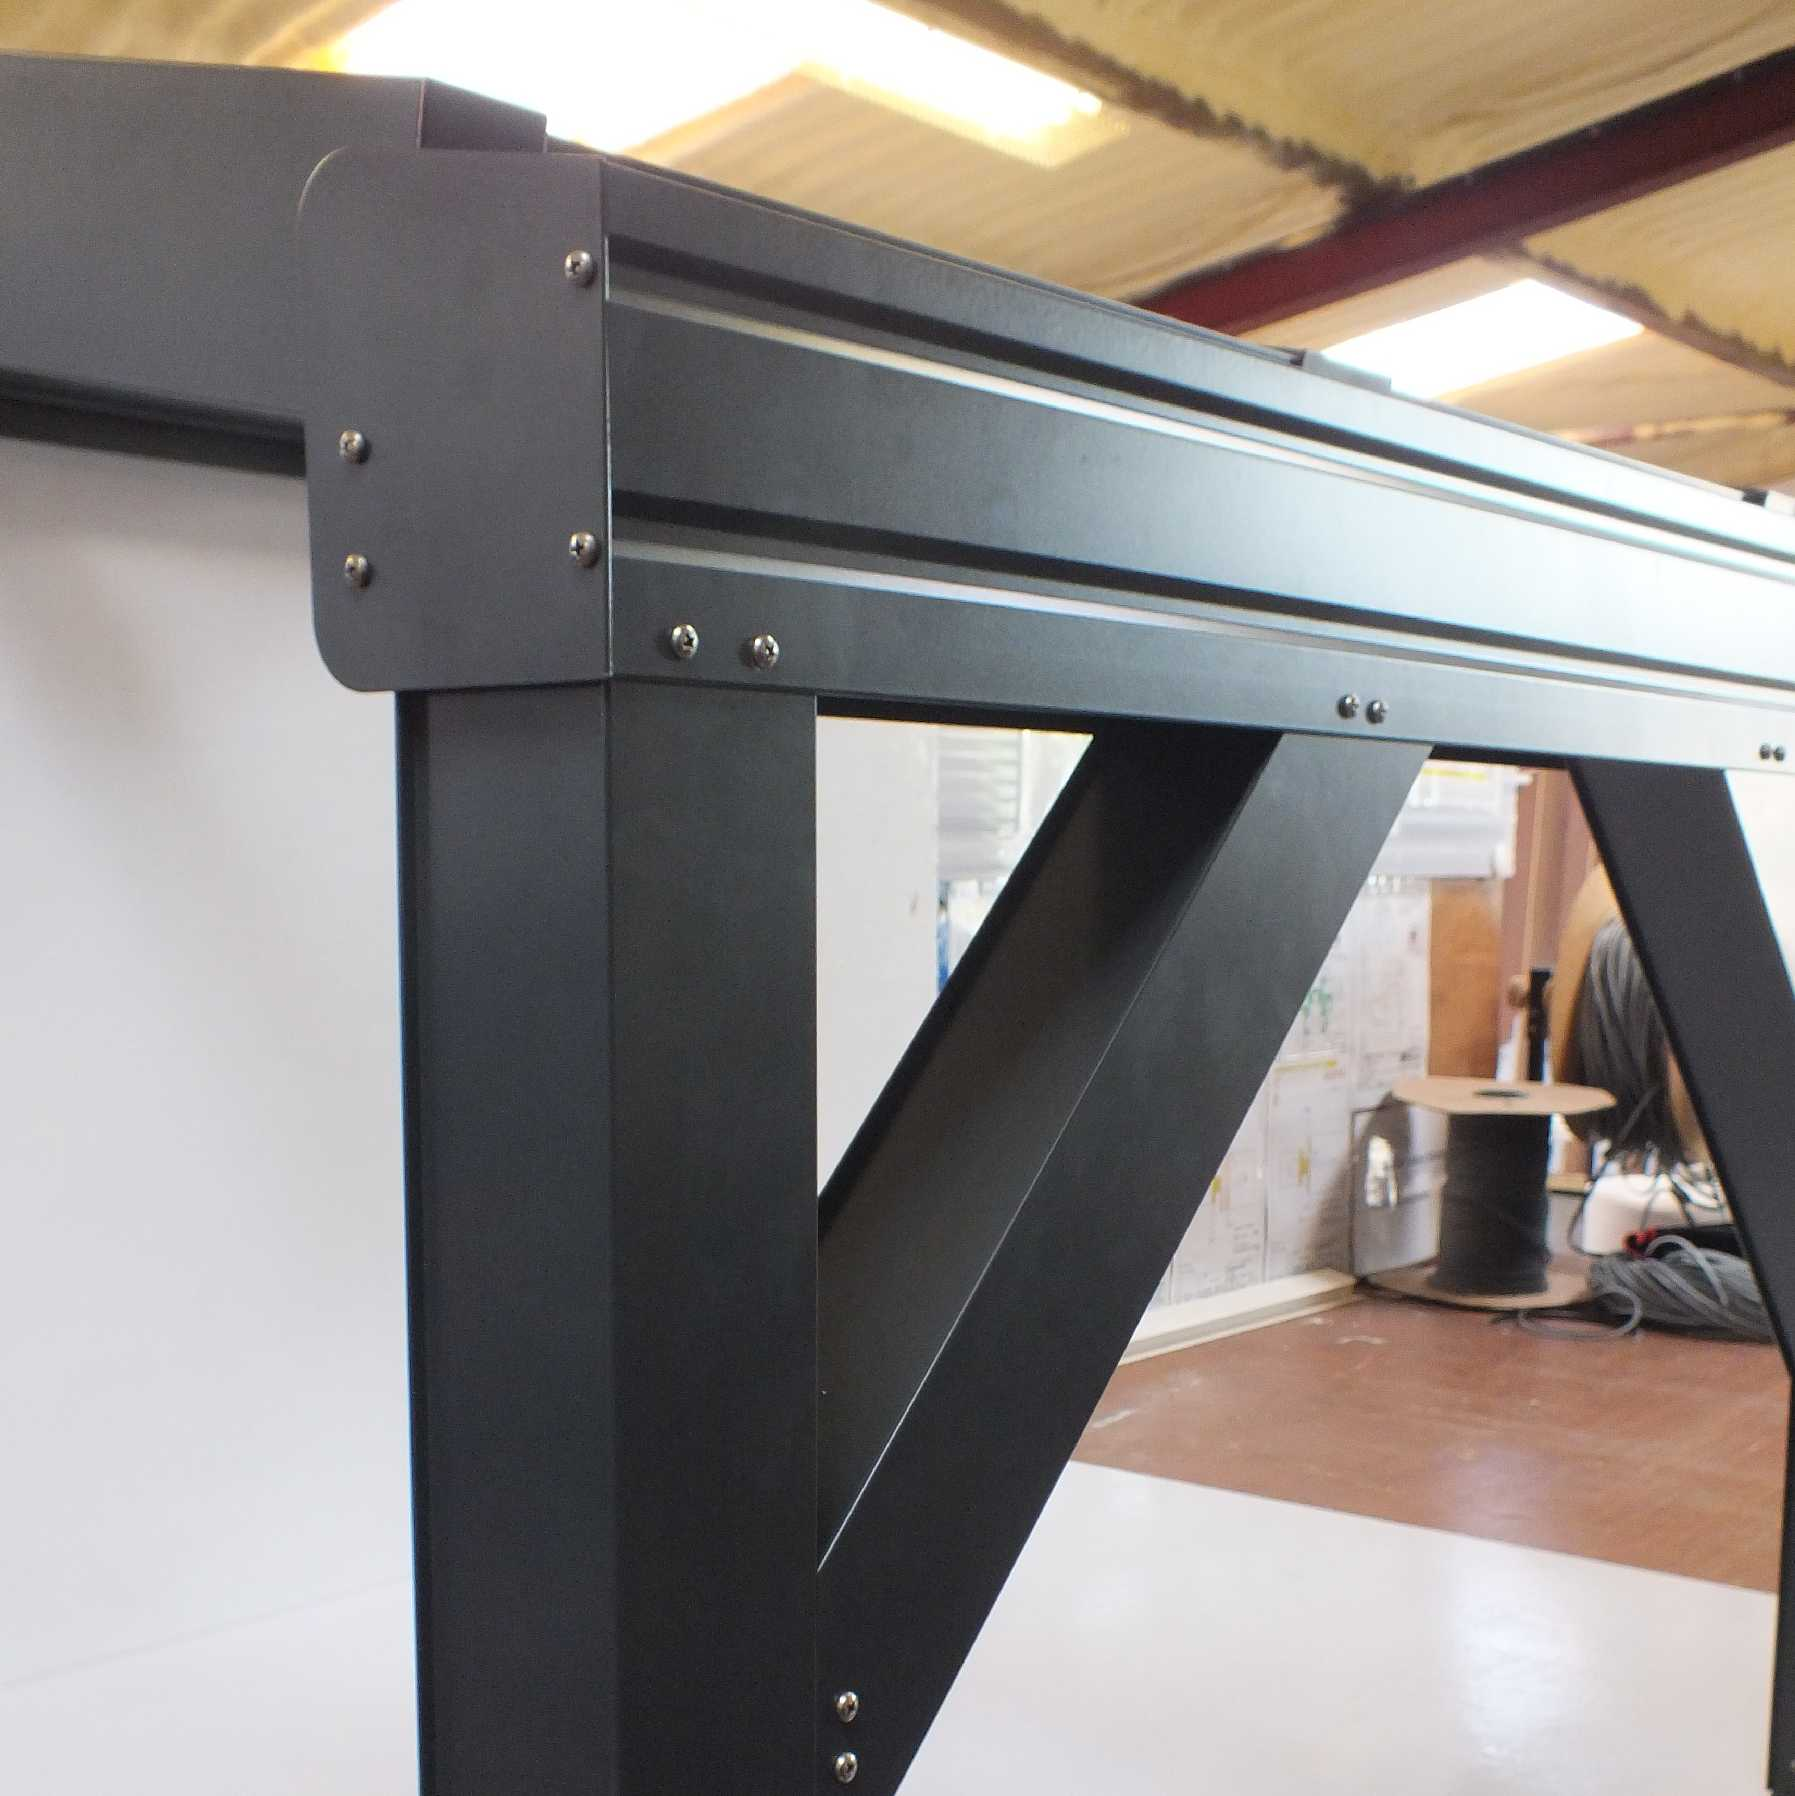 Omega Smart Lean-To Canopy, Anthracite Grey, UNGLAZED for 6mm Glazing - 5.6m (W) x 2.0m (P), (3) Supporting Posts from Omega Build